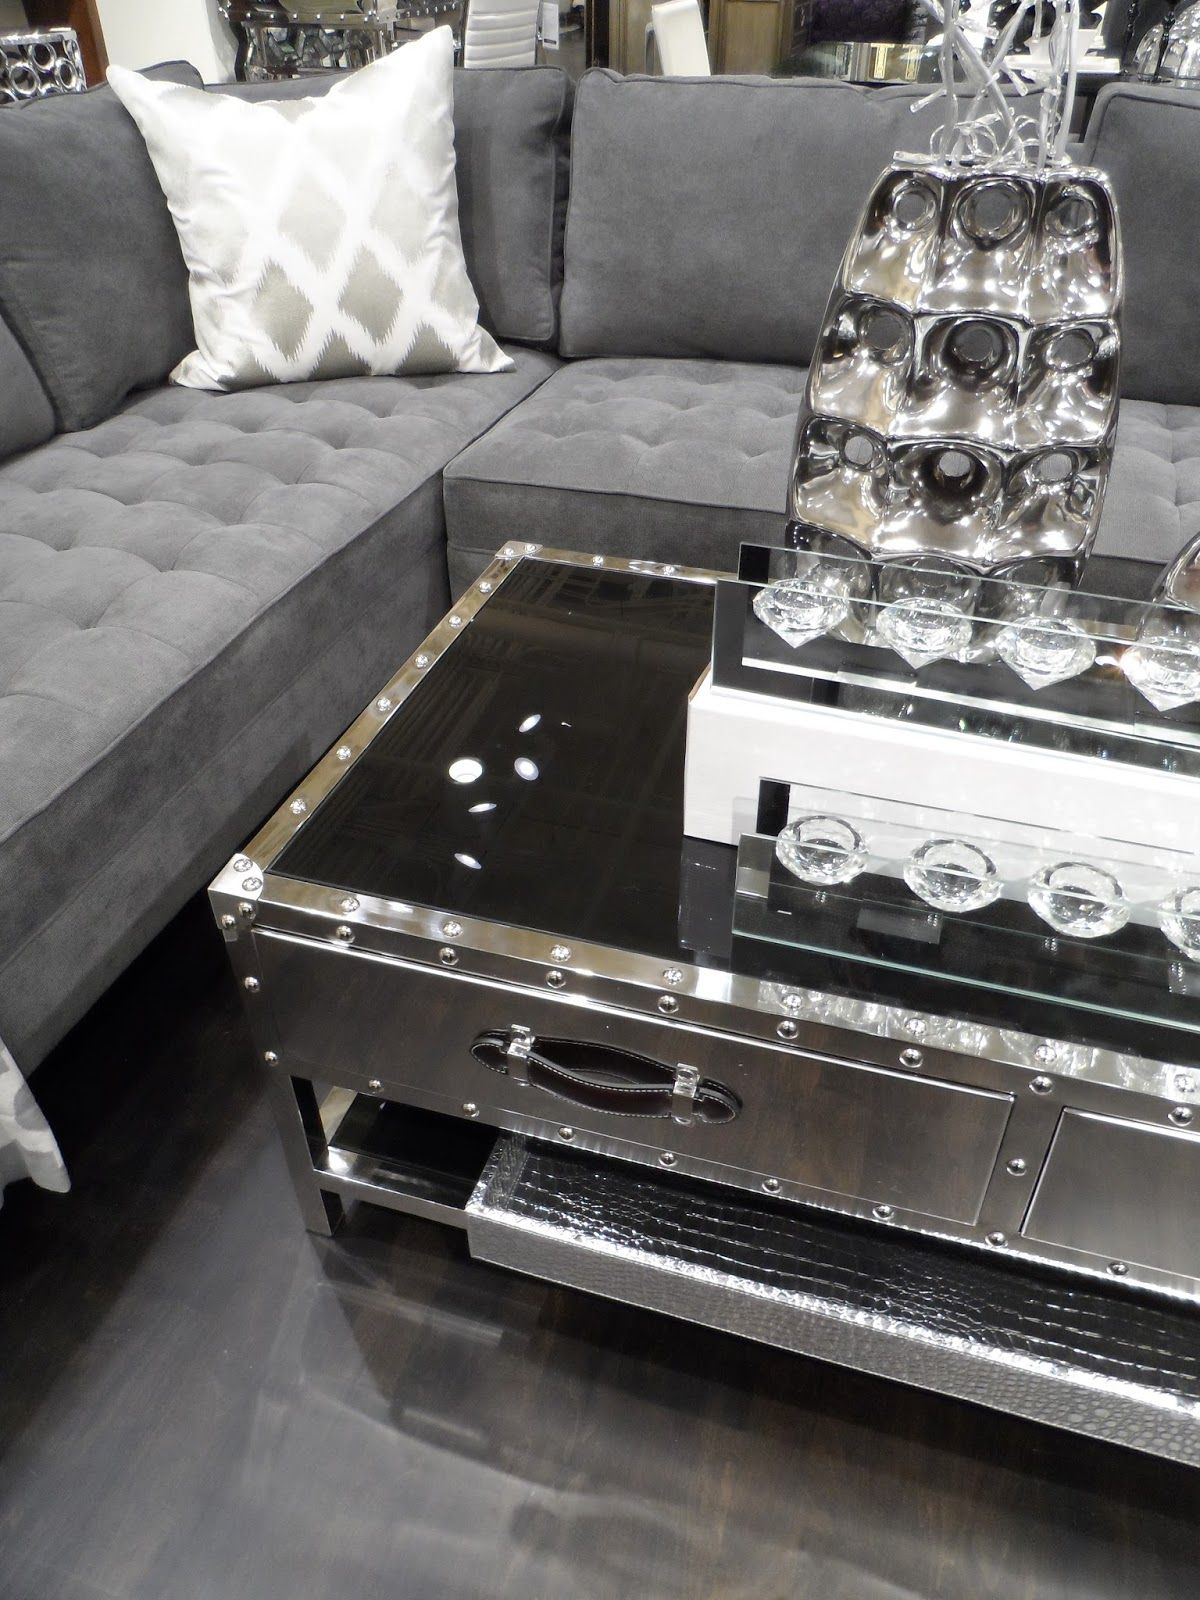 Z gallerie scottsdale reopening store tour his u her palace